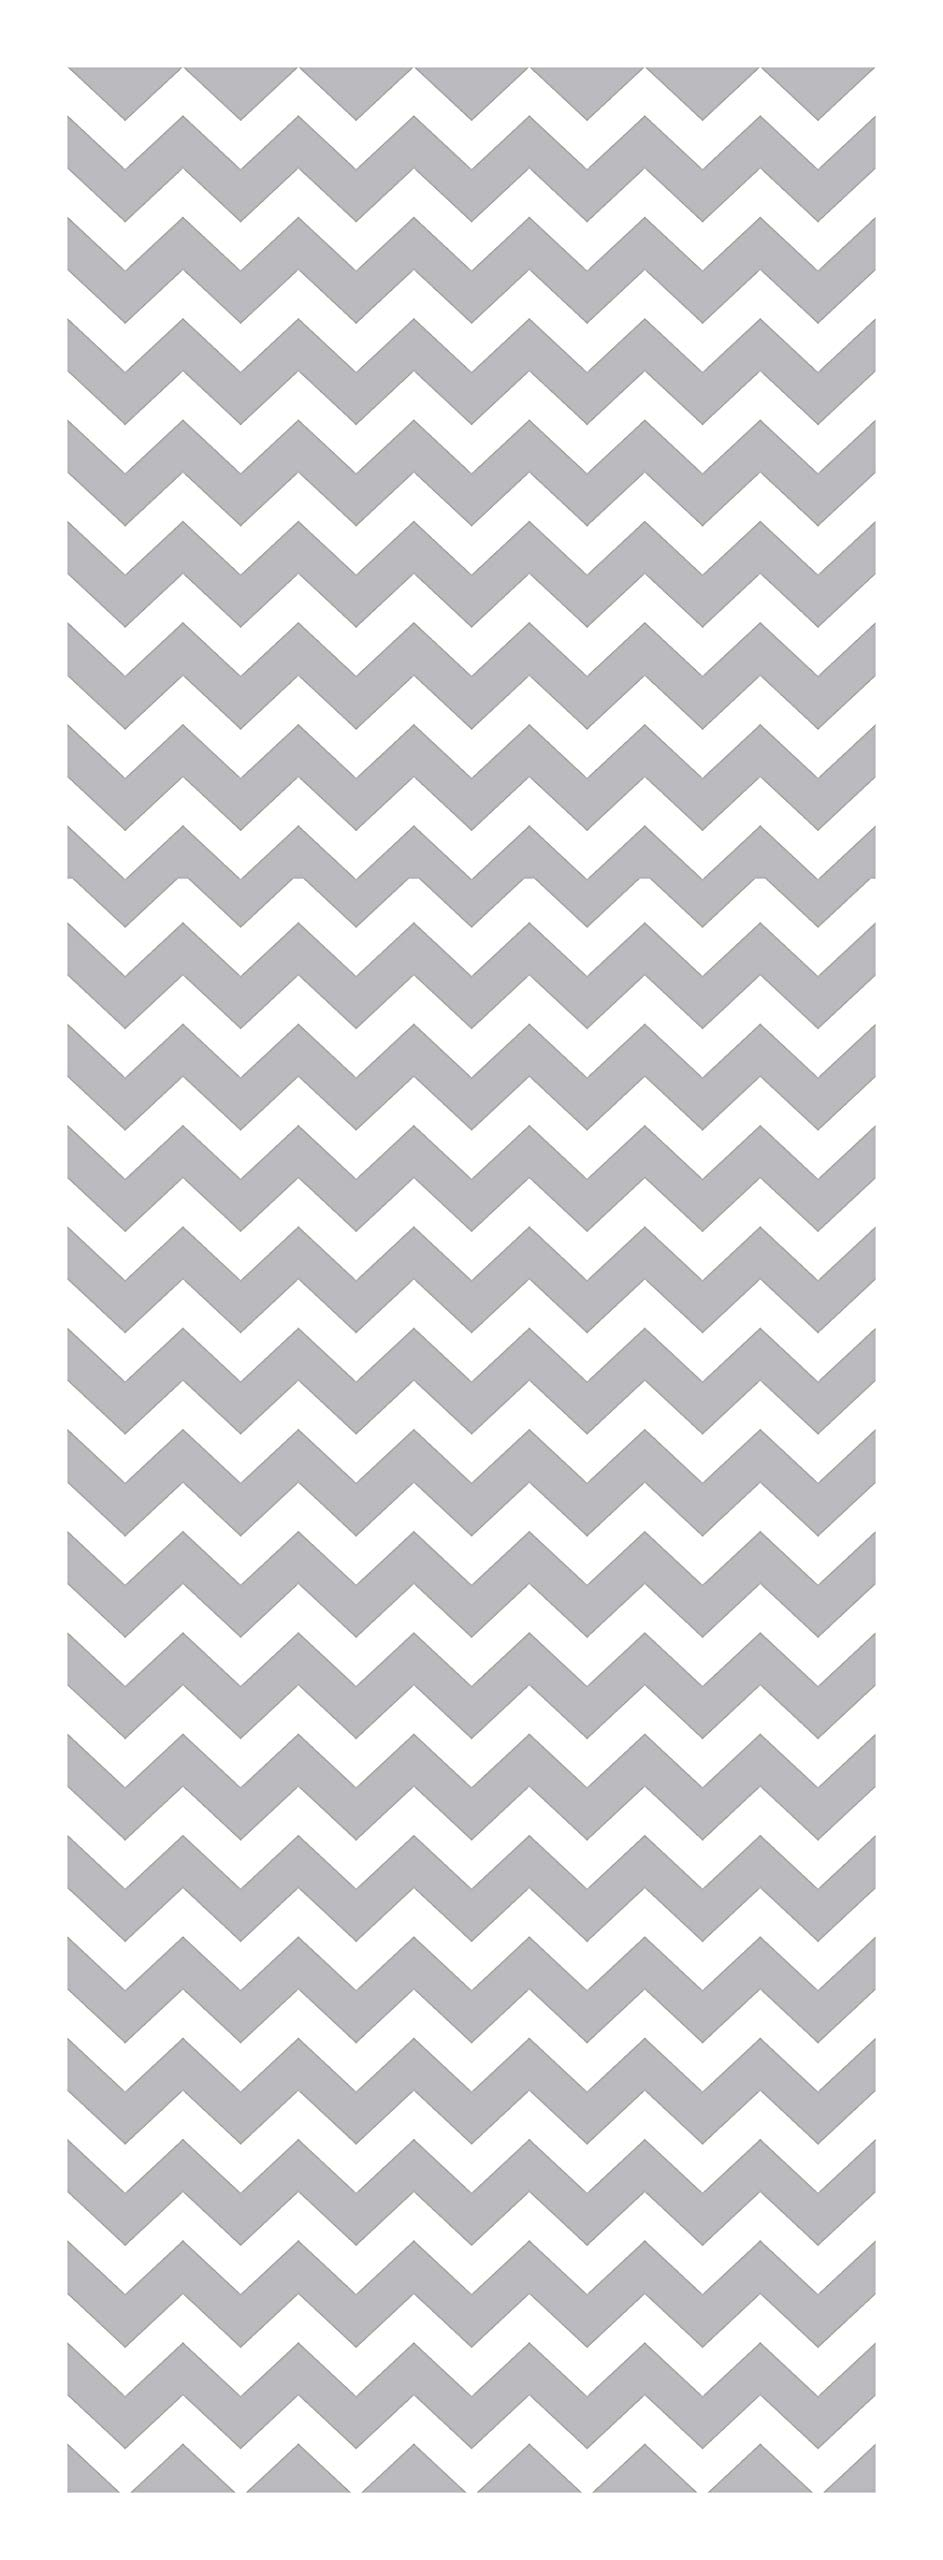 Locker Designz Back to School Magnetic Locker Chevron Wallpaper, Gray